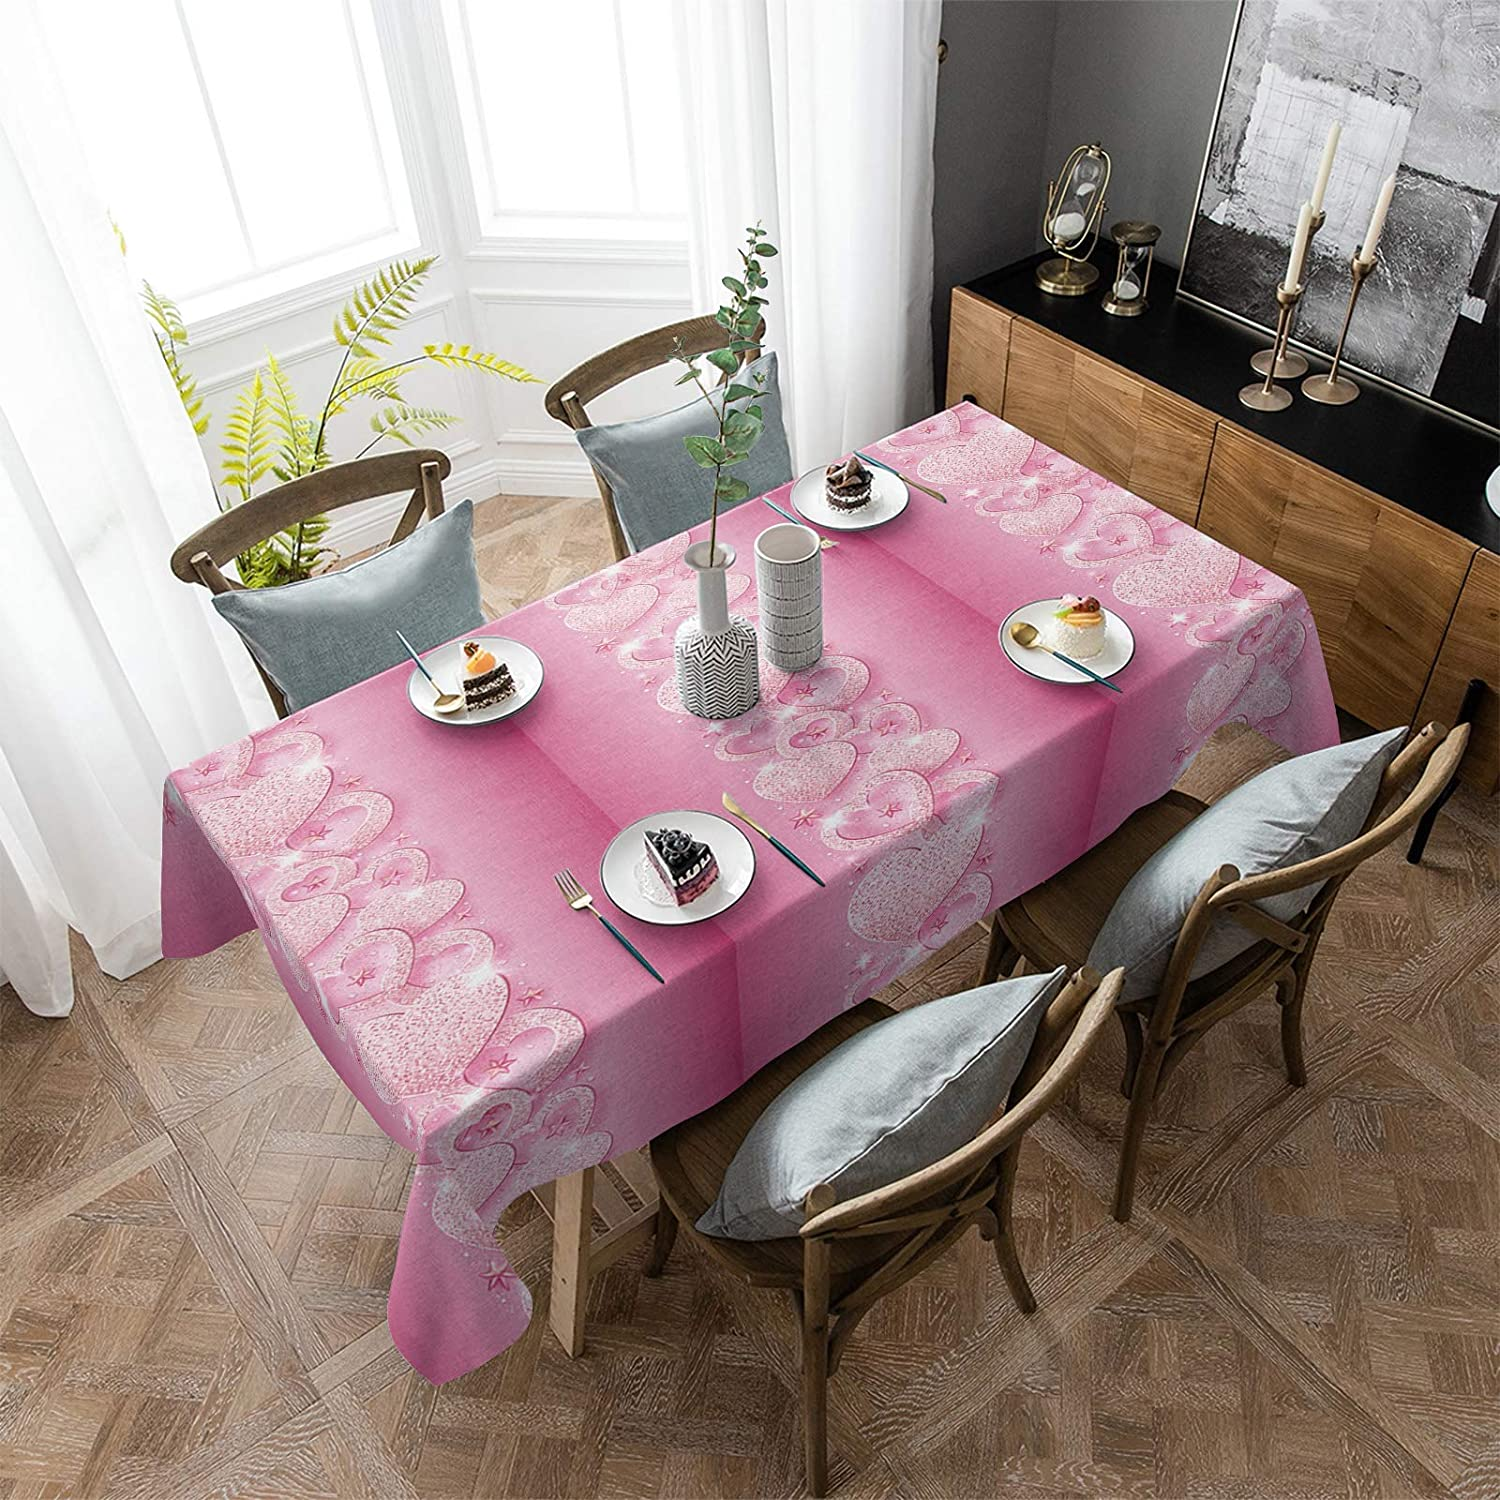 Aomike Linen Rectangle Tablecloth Happy Pink Swe Albuquerque Mall 2021 Day Valentine's